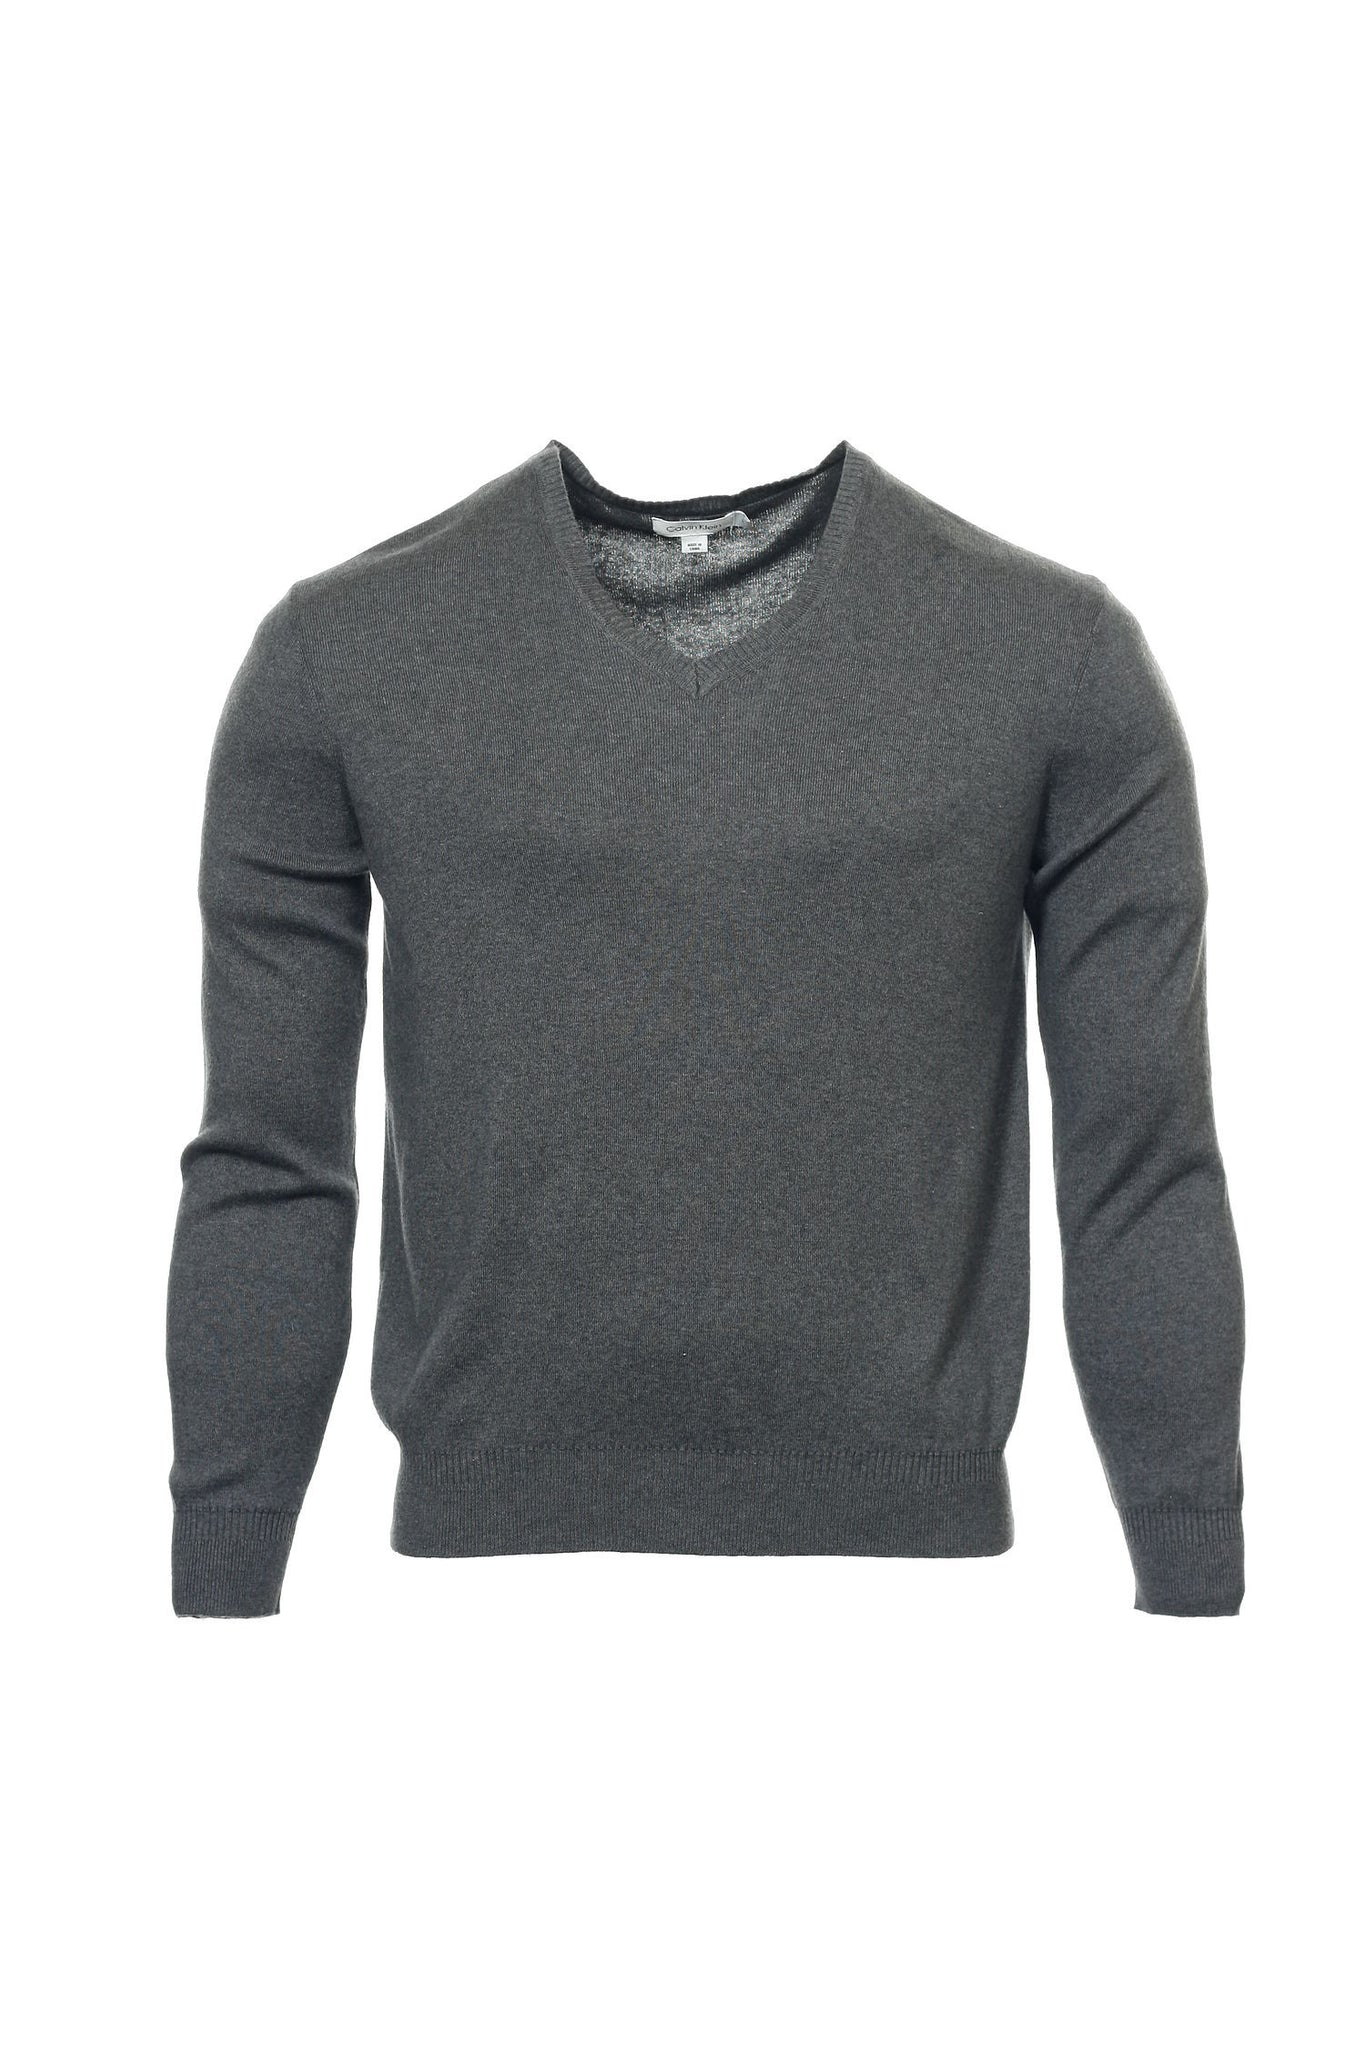 Calvin Klein Mens Gray V-Neck Sweater